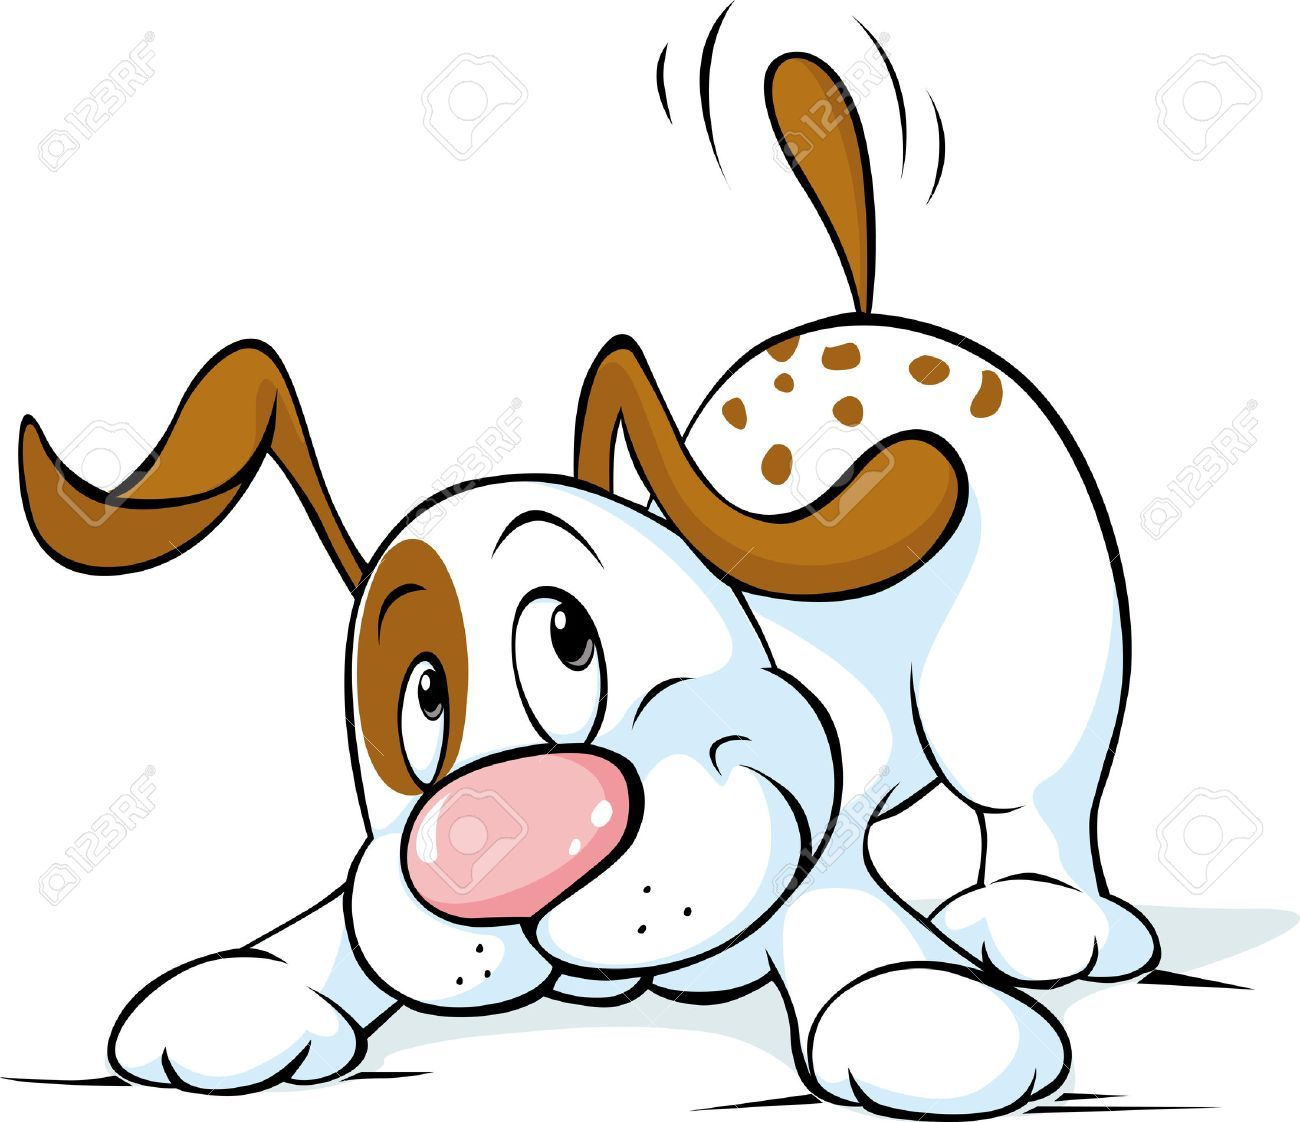 Clipart wagging jpg Dog wagging tail clipart 6 » Clipart Portal jpg